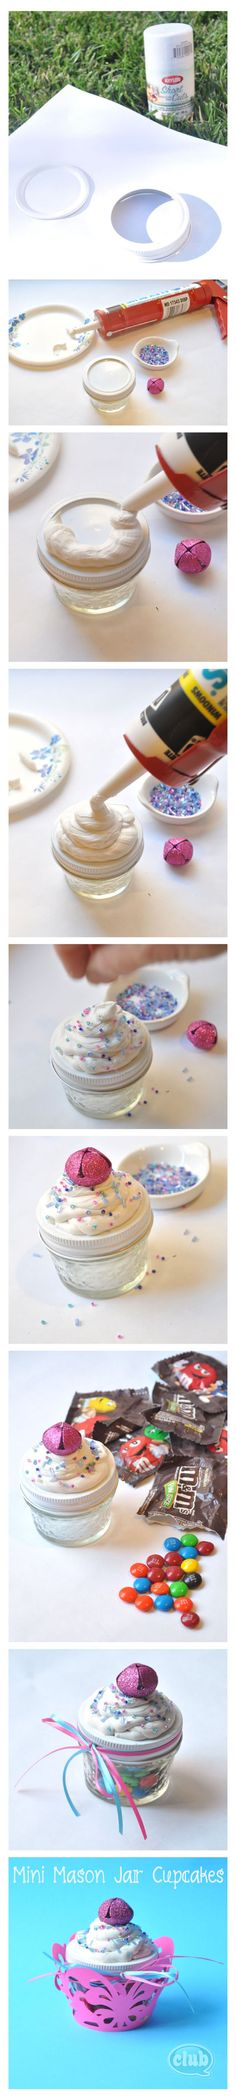 Mini Mason Jar Candy Cupcakes DIY craft using caulk and beads. Very cheap and easy. Fun party favors!